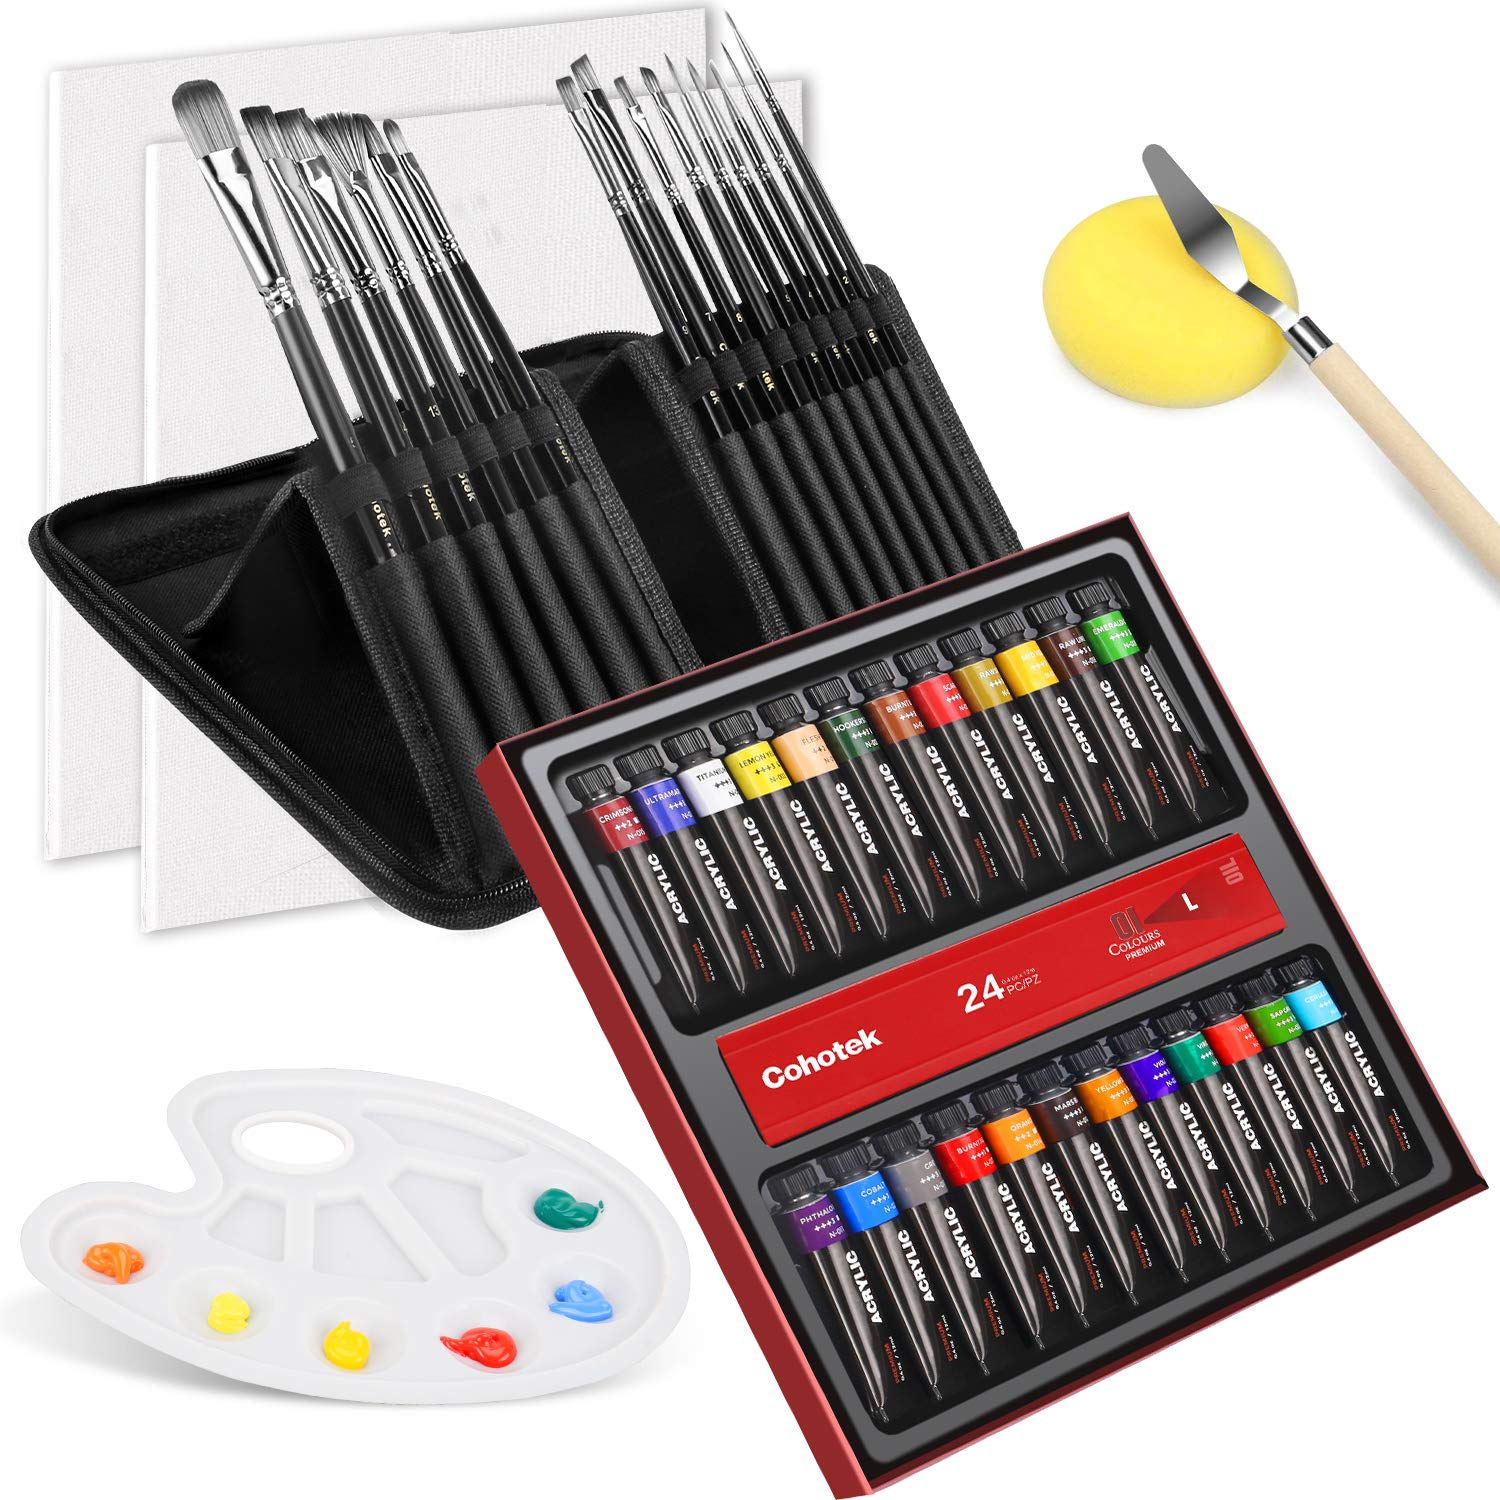 Acrylic Paints Set, Cohotek 44pcs Paint Art Supplies, Including 24 Colors,Premium 15PCS Paint Brushes,Mixing Scraper,Palette,Sponge and 2PCS Blank Art Canvas, Canvas Painting kit for Adults and Kids